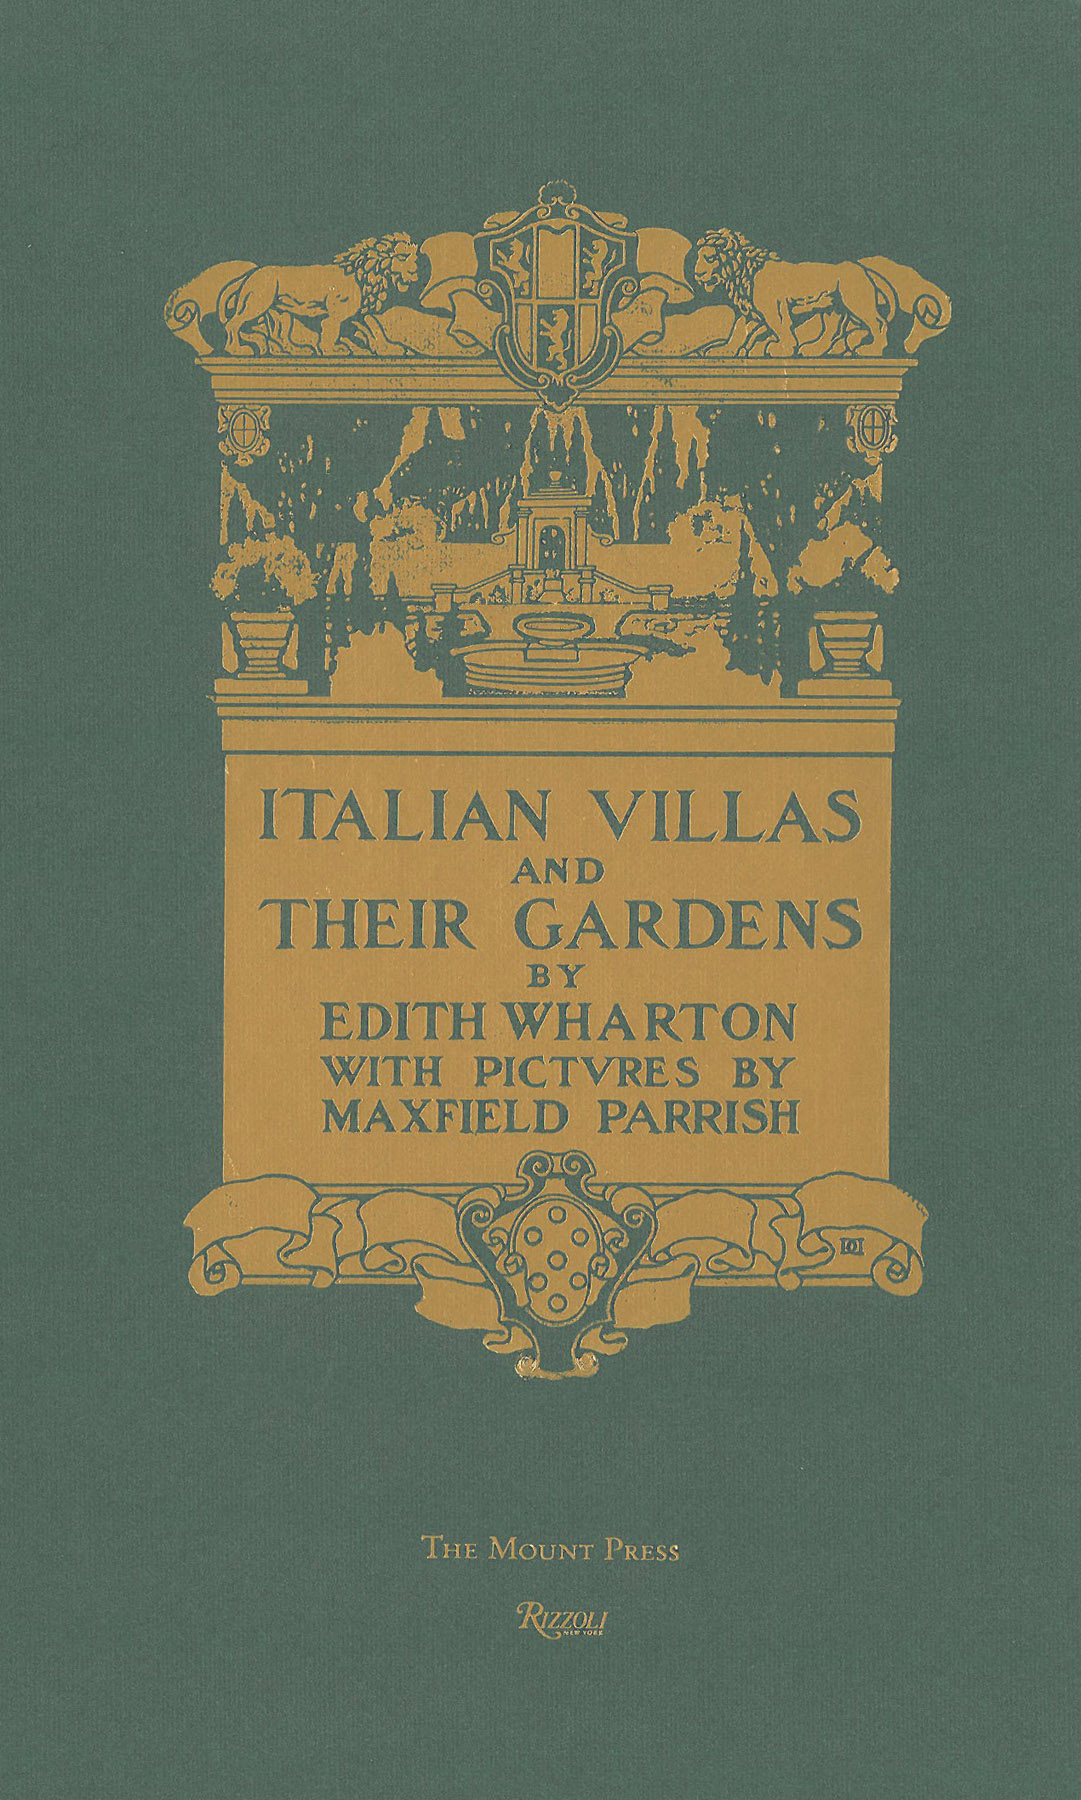 My own, much-thumbed copy of Wharton & Parrish's guide to Italy's gardens